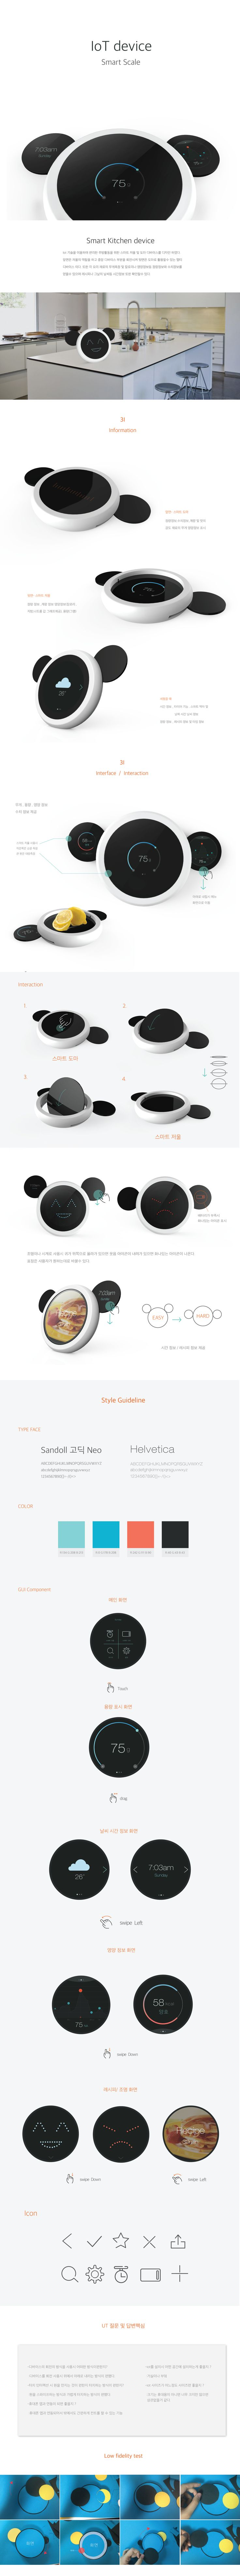 Circle display_Smart scale